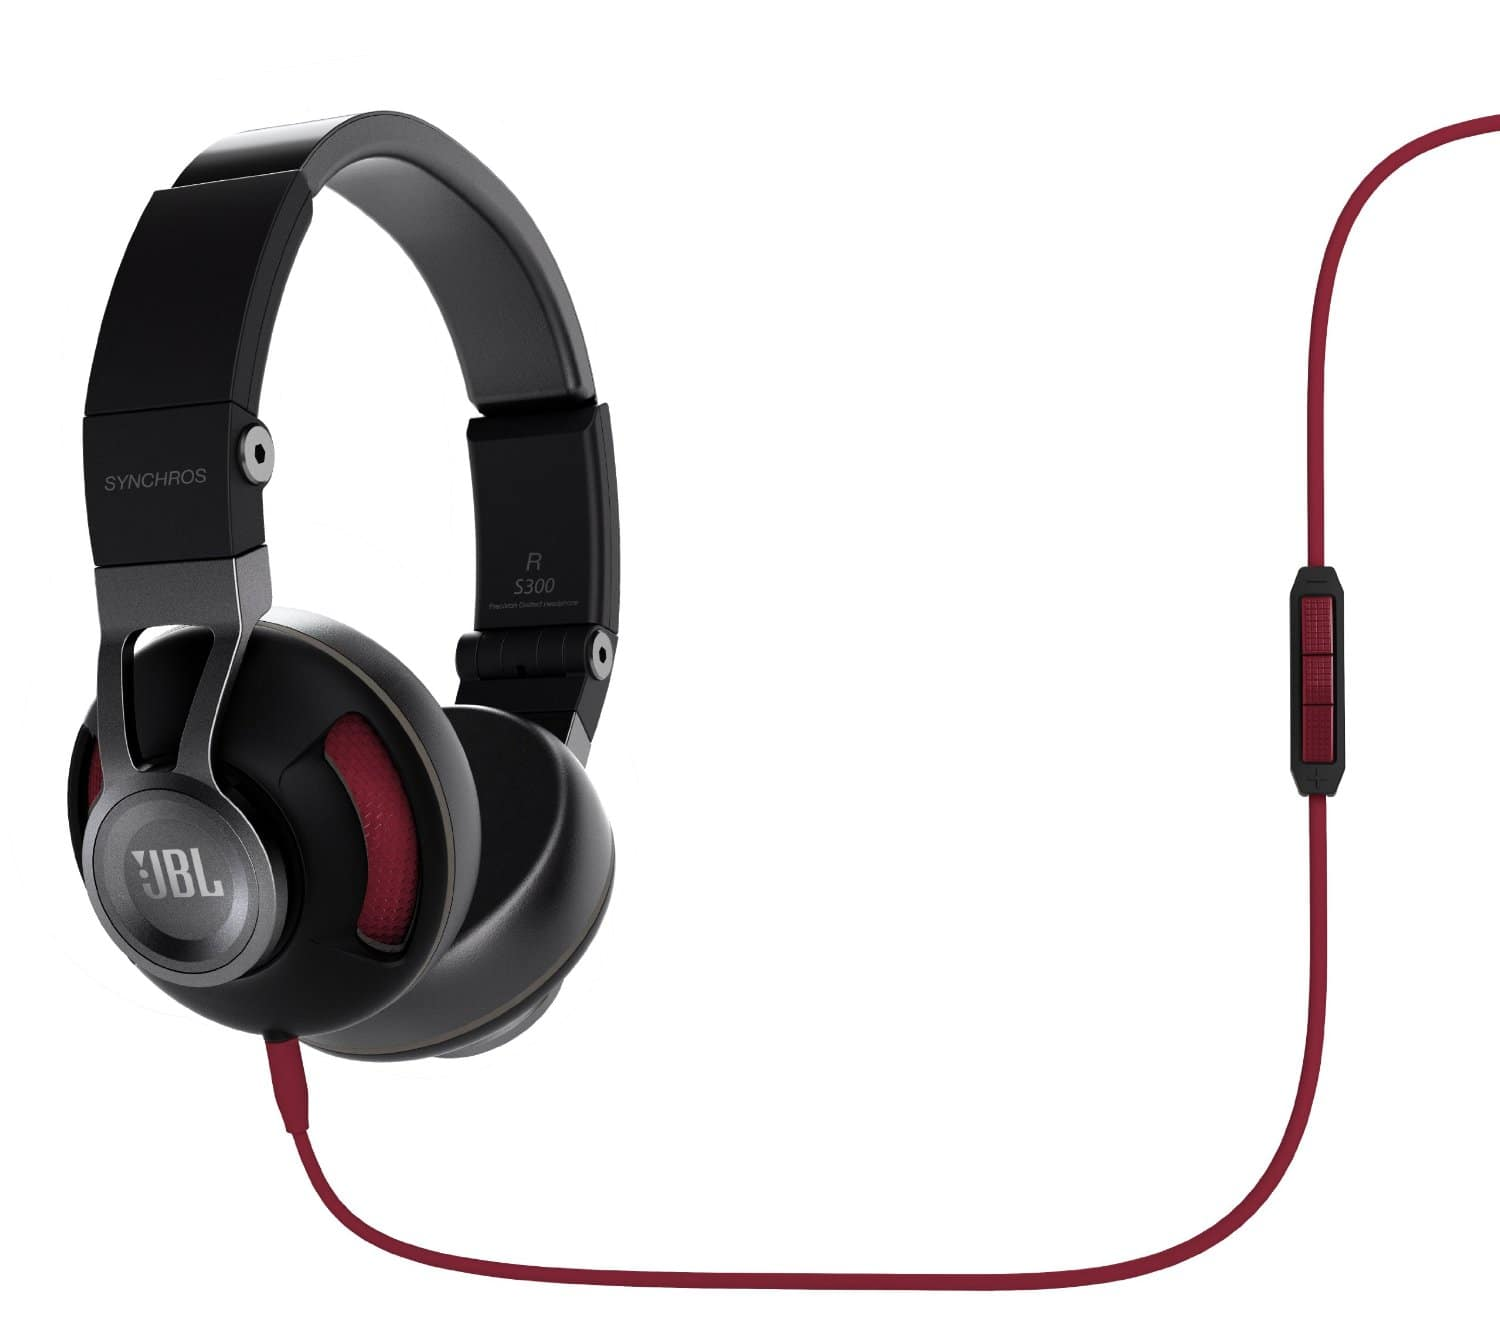 JBL Synchros S300 Premium On-Ear Headphones w/ Built-In Remote/Mic  $50 + Free Shipping